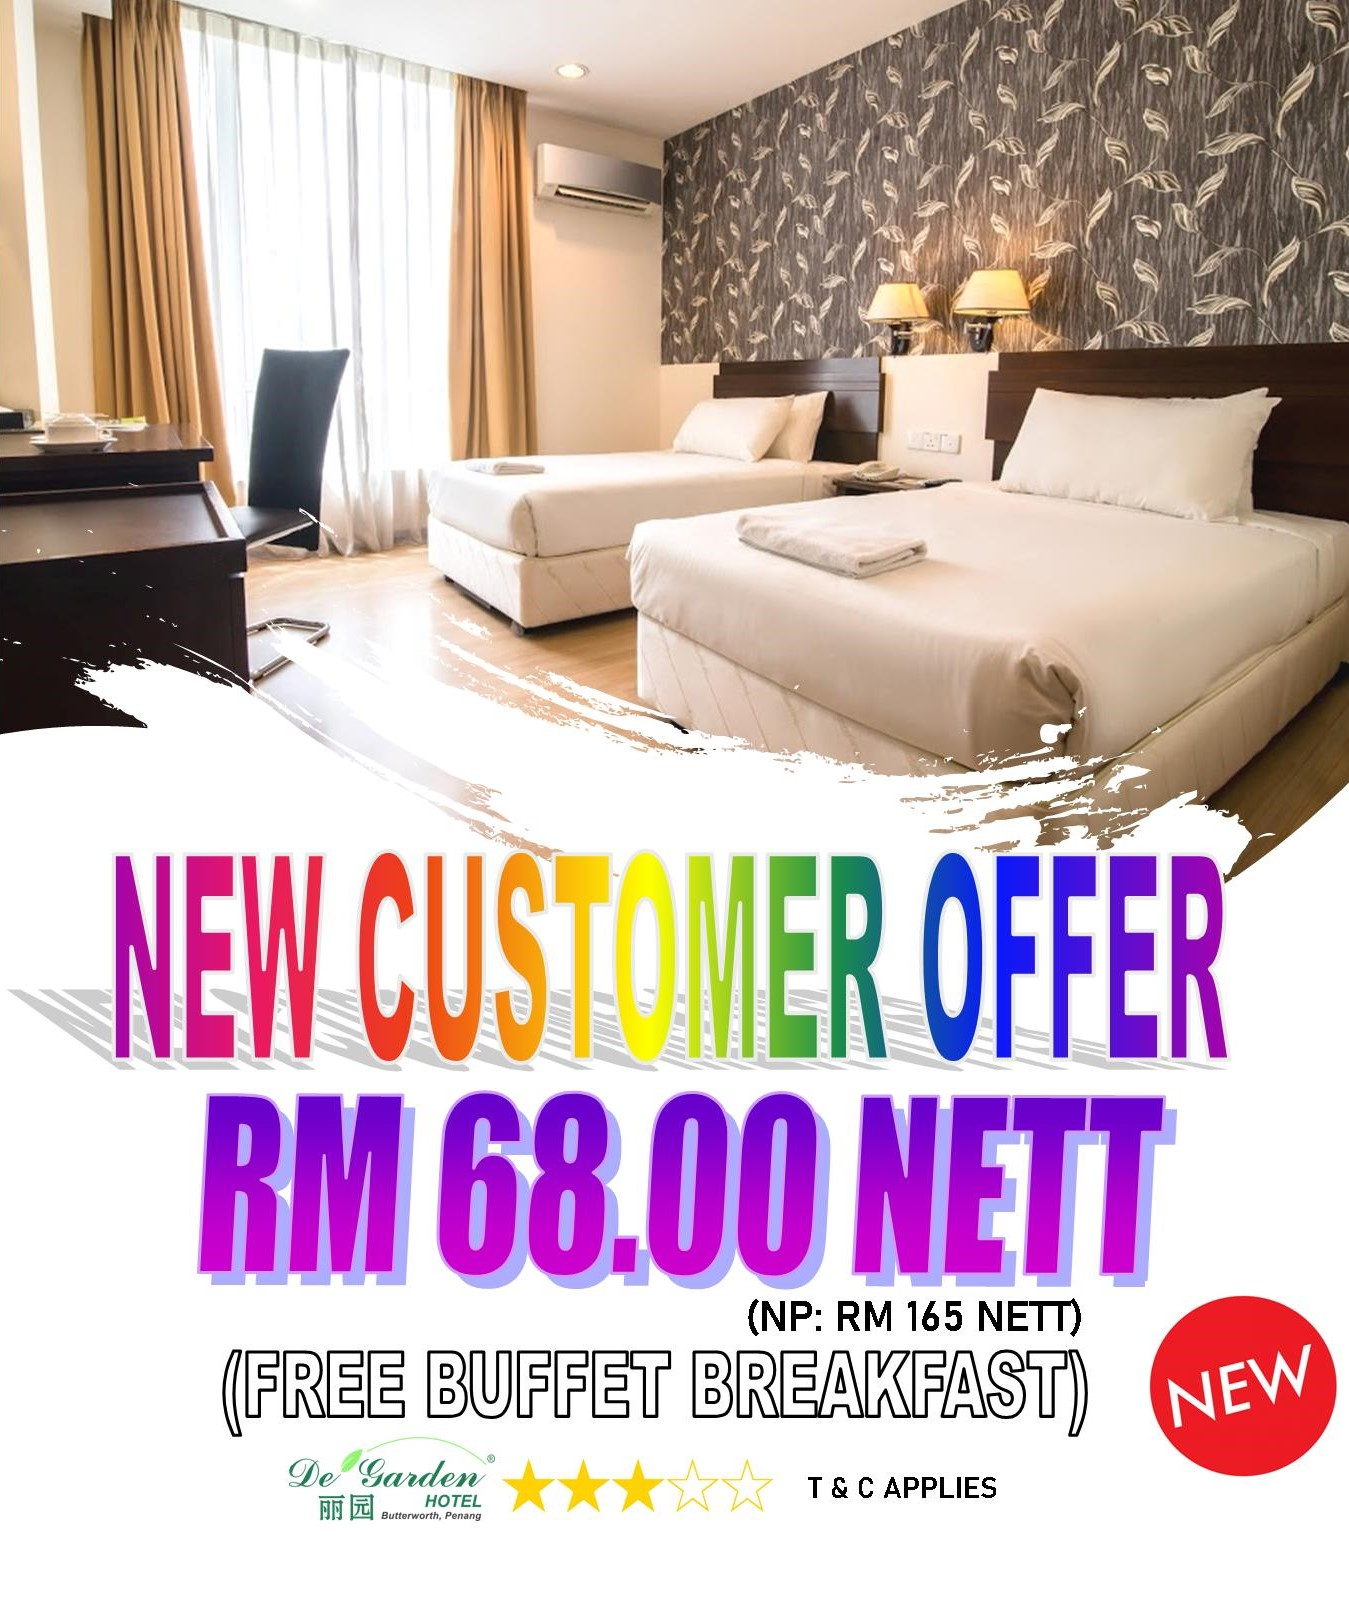 rm68 promo NEW CUSTOMER - FINAL for whatsapp use (croP)